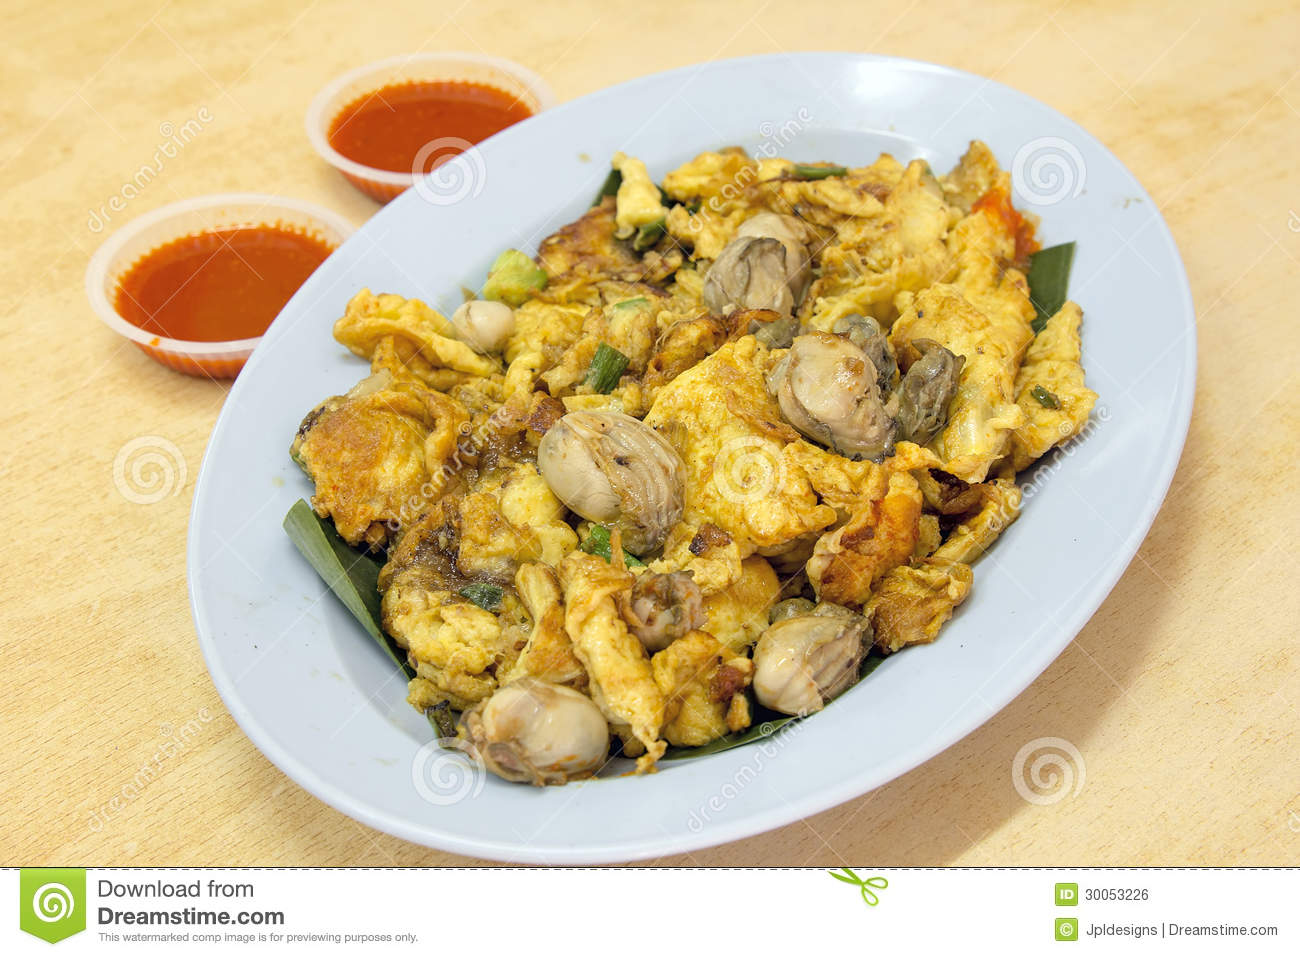 Oyster Omelette Royalty-Free Stock Photo | CartoonDealer ...